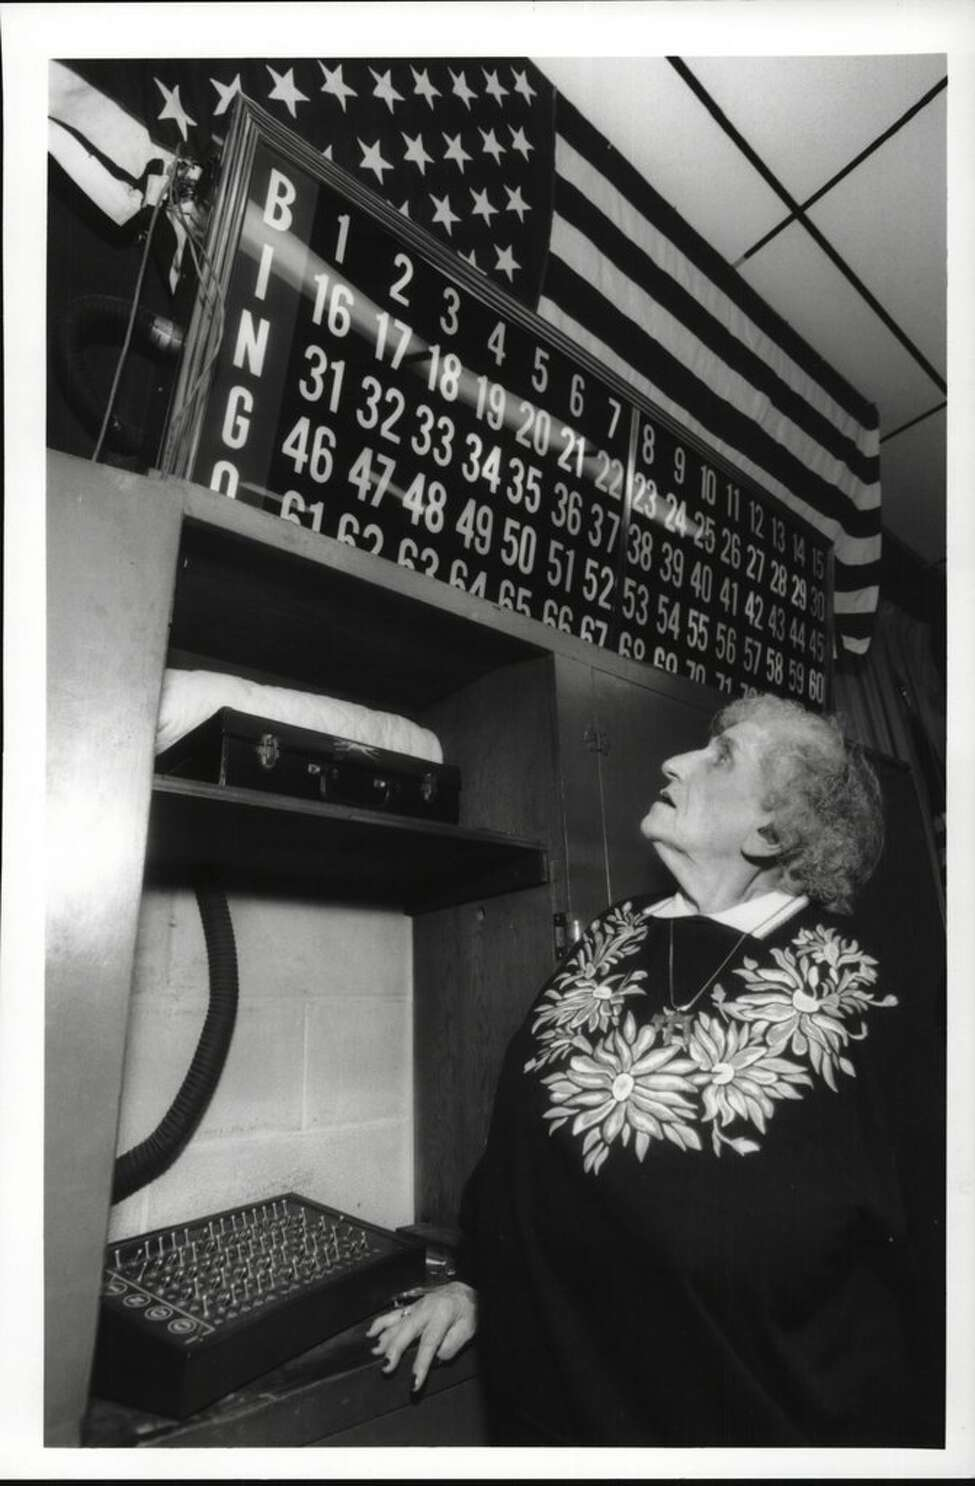 Ancient Order of Hiberians Hall, Quail Street, Albany, New York - Mrs. Bingo, Hilda Gordon, one of the congregation who runs Wednesday night bingo for Ohav Shalom. Hilda is working the number board keeping track of the numbers called. January 19, 1994 (Luanne M. Ferris/Times Union Archive)